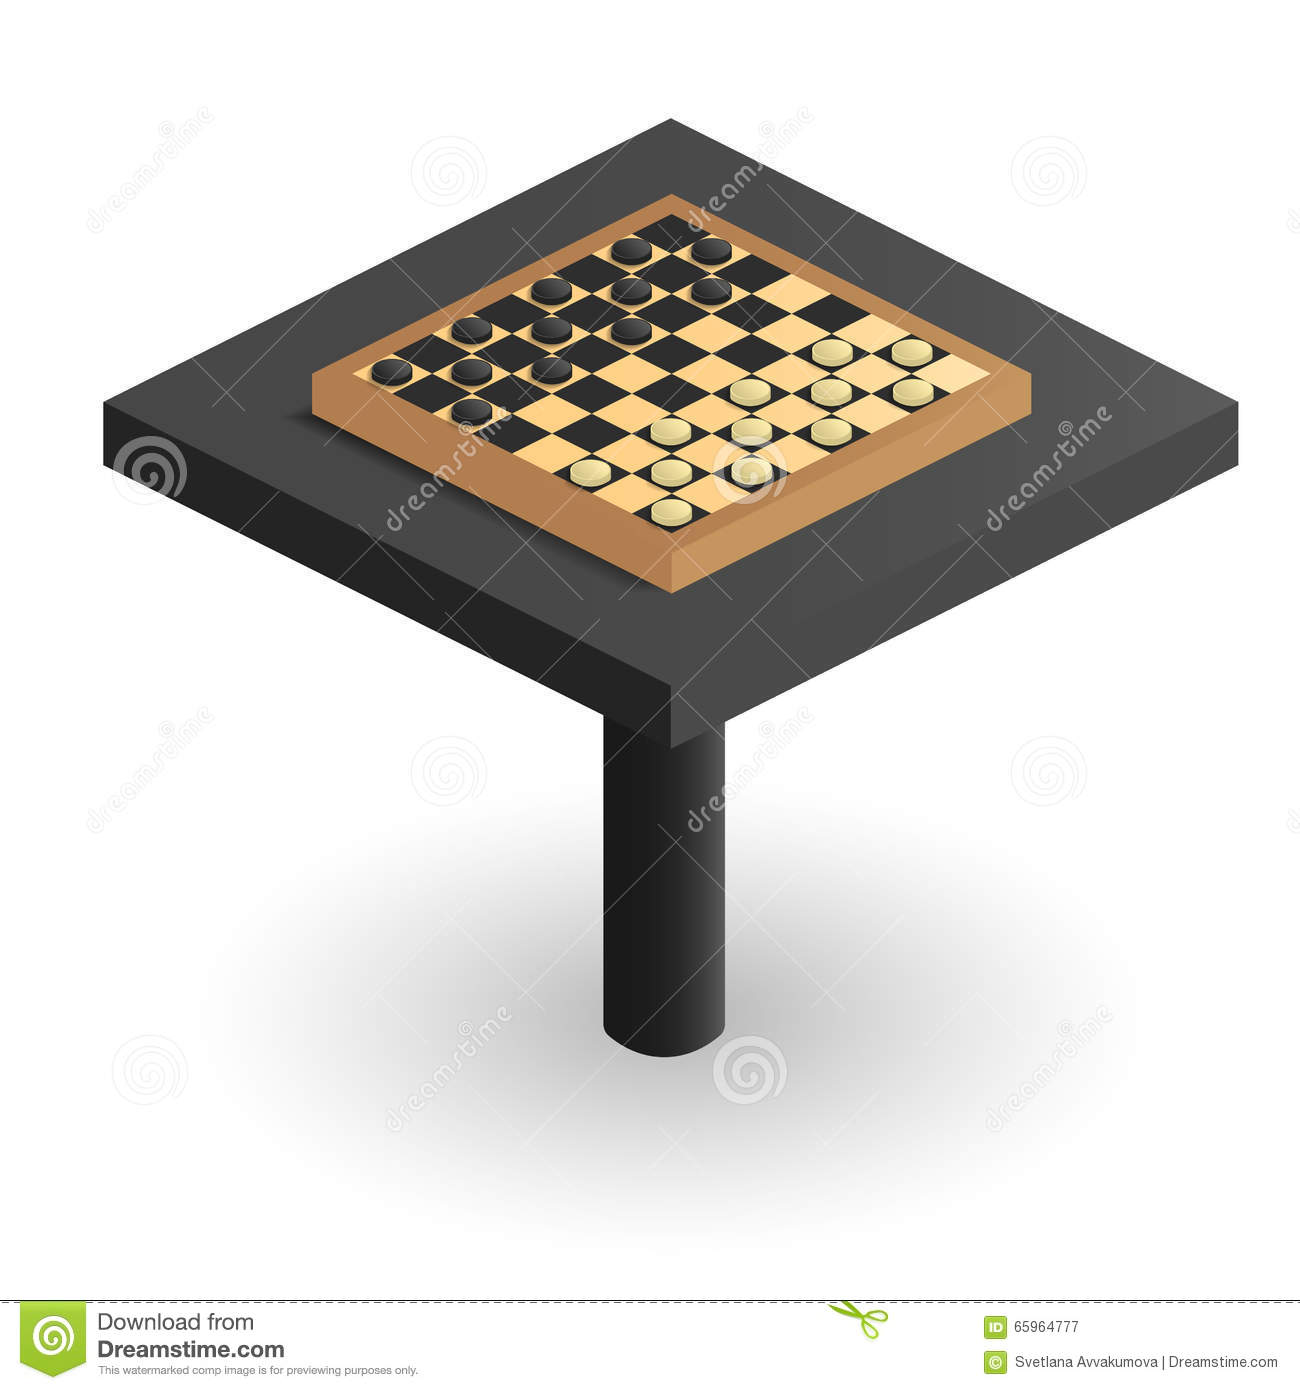 Chess Board Design Checkerboard In Perspective On The Table Isometric Image